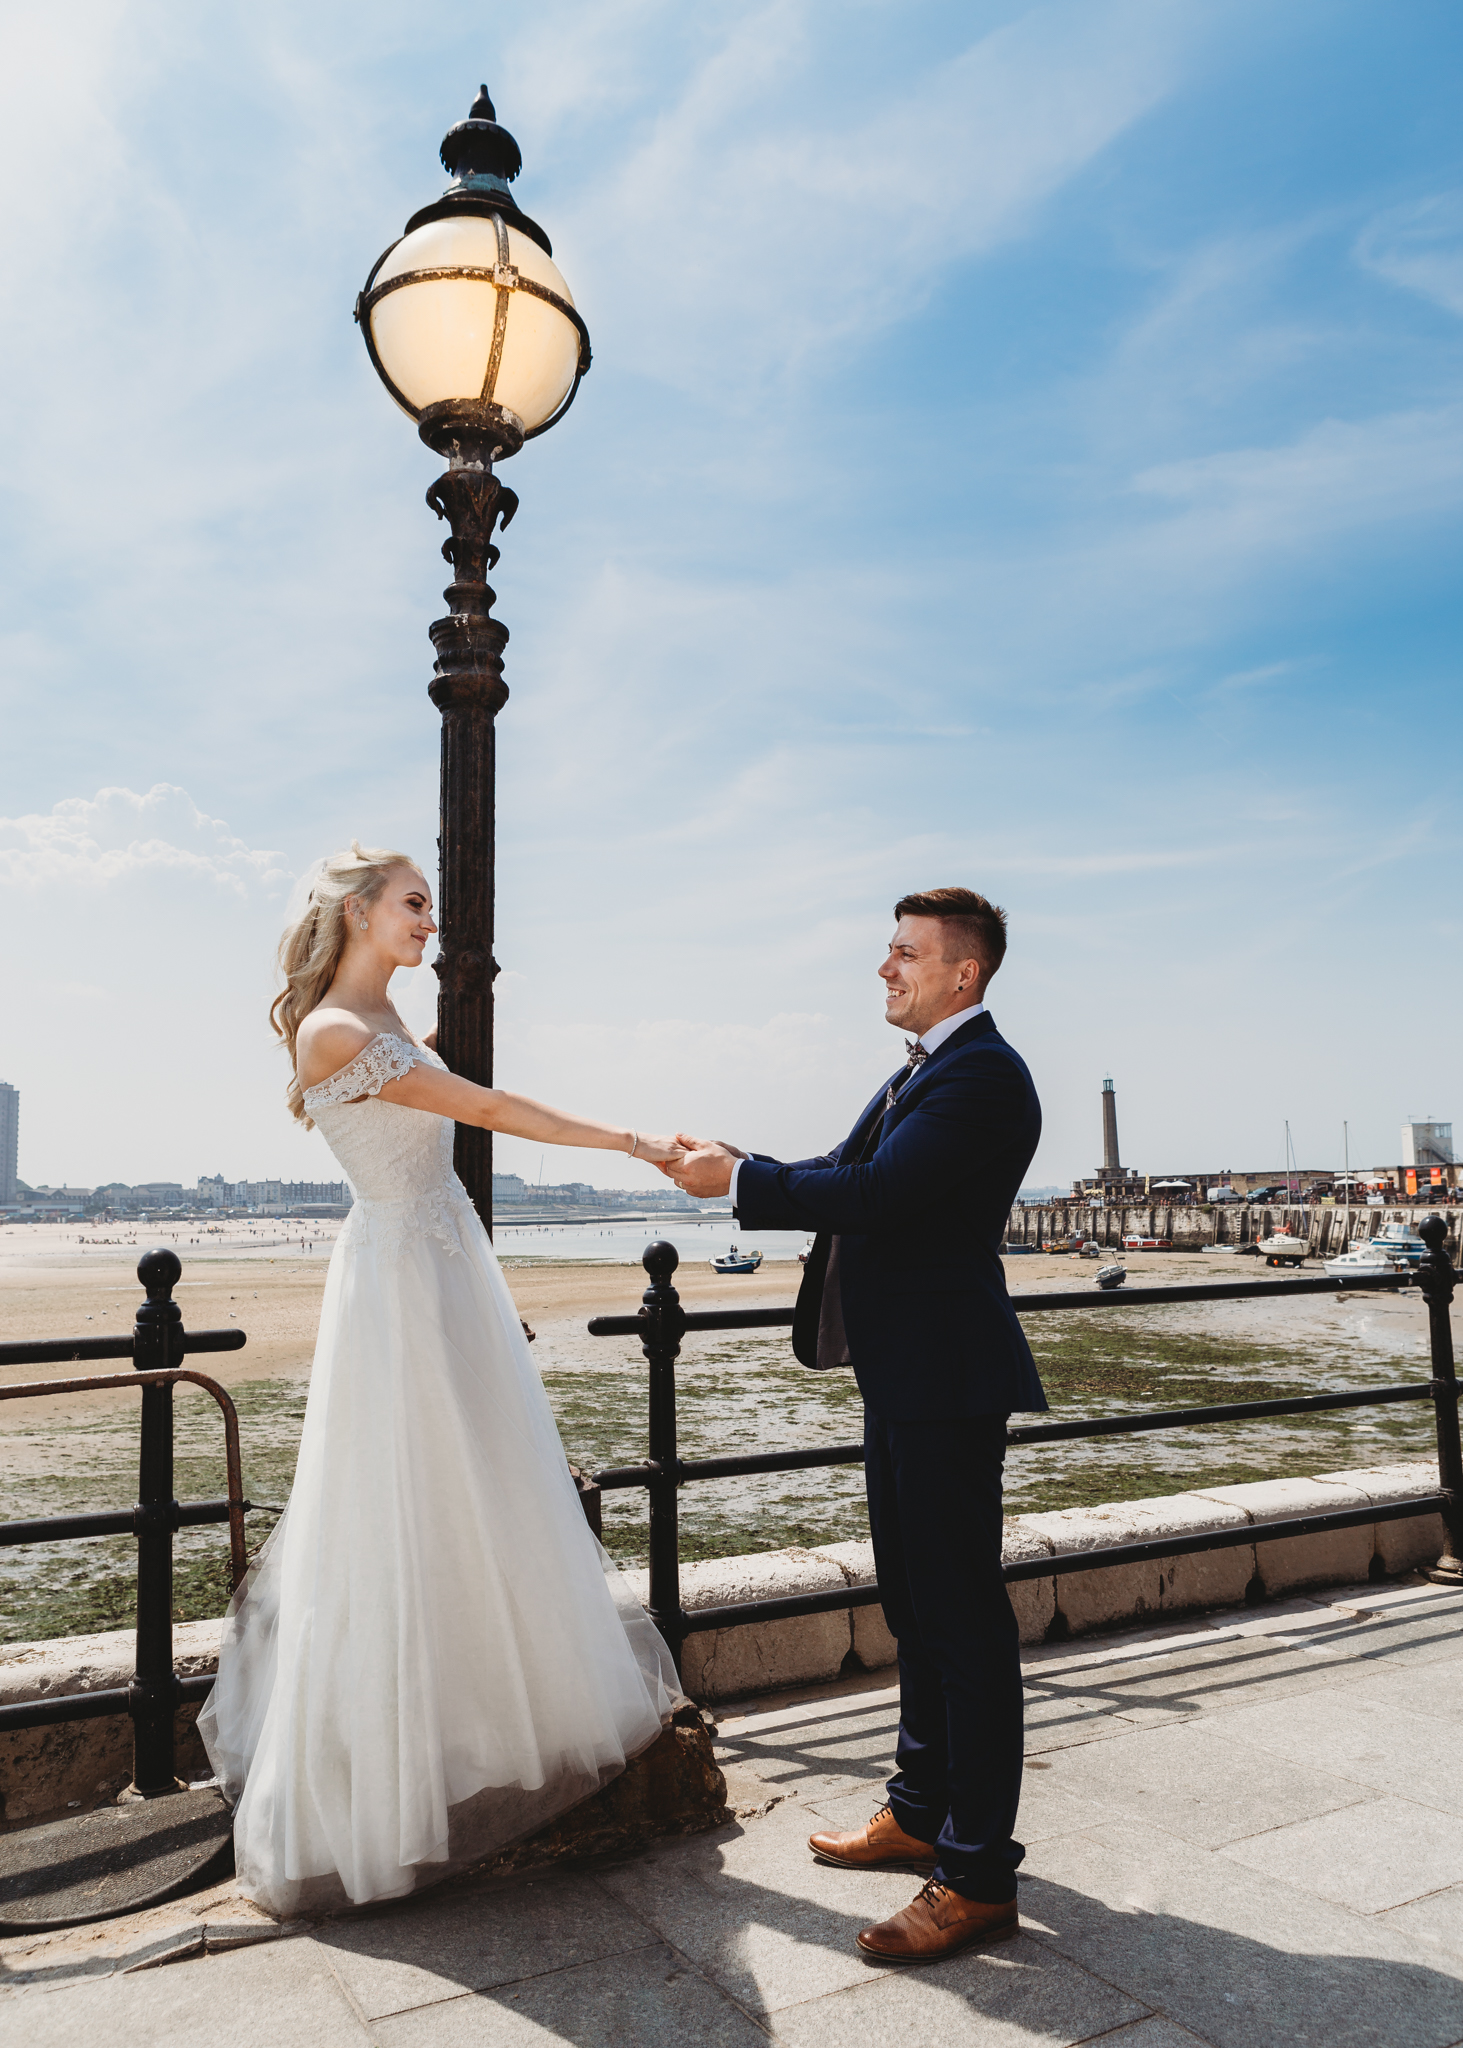 Standart - £850● Pre-wedding consultation.● Engagement photo shoot*● Full day coverage from bride/groom getting ready to first dance (aprox. 9-10 h coverage).● Proof and photo selection by customer before start editing.● 250 – 300+ digital high resolution images on a personalised USB stick in a keepsake box. Online gallery for 6 months.